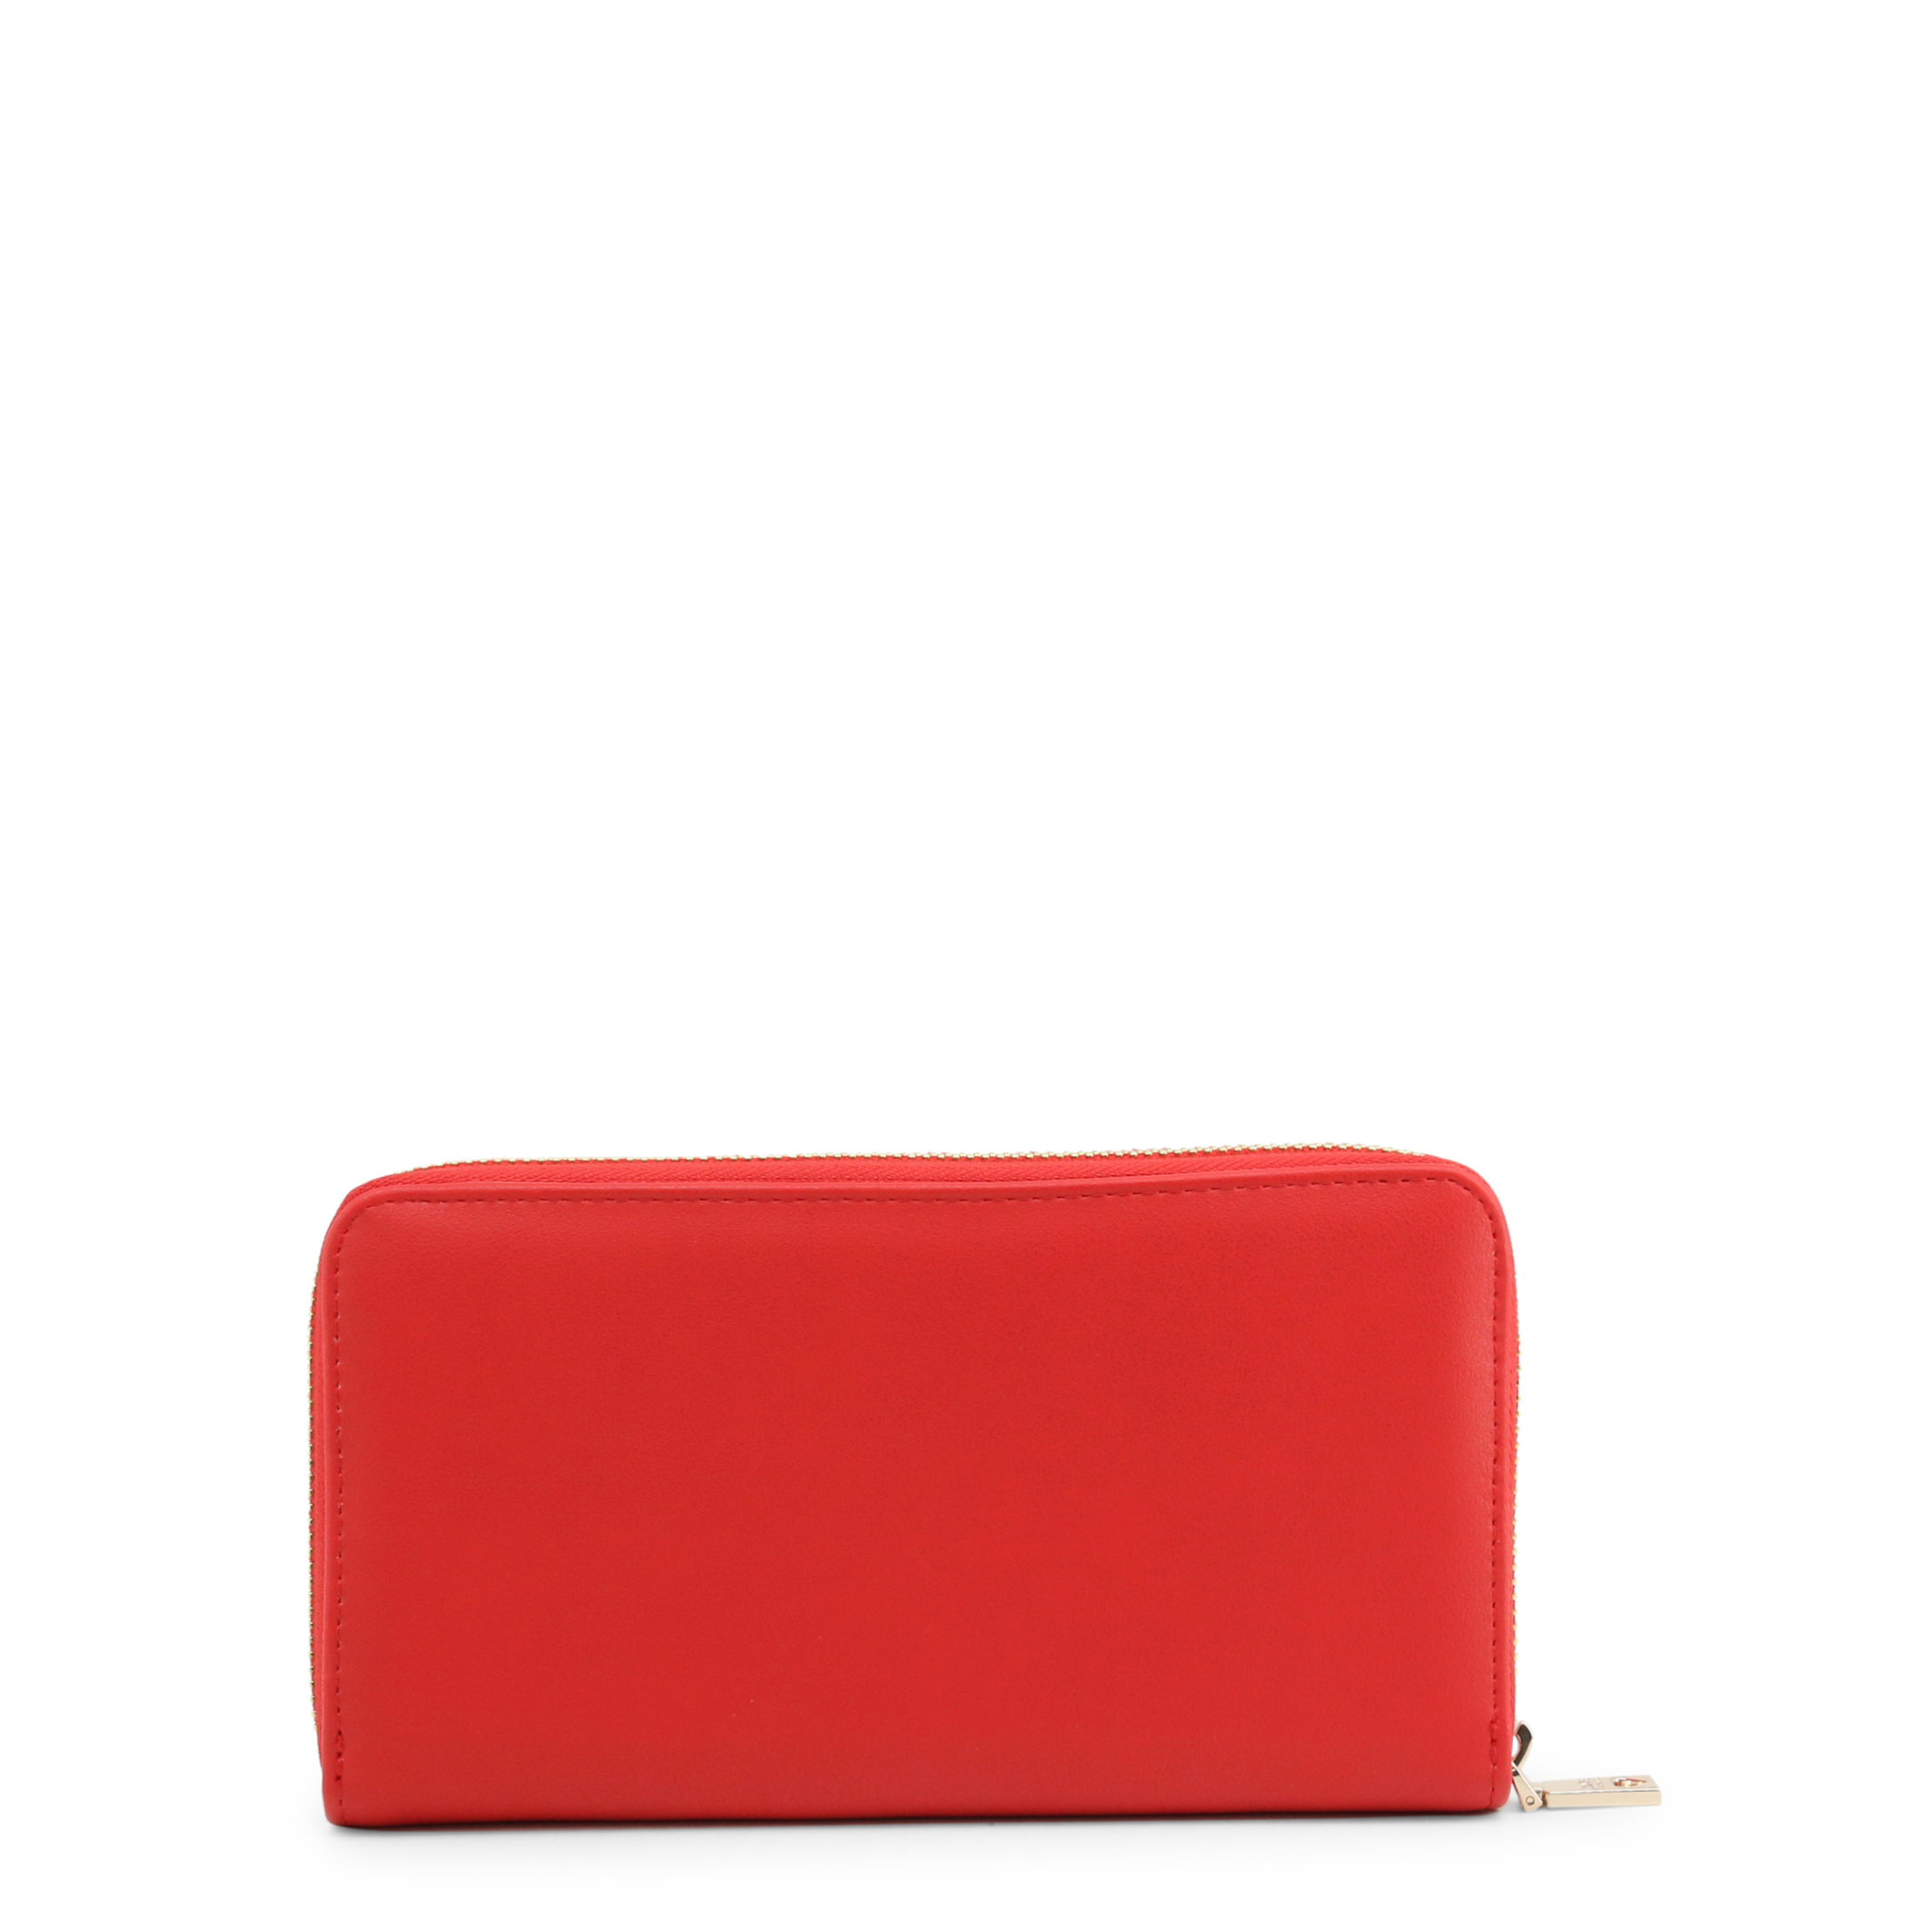 Portefeuilles / Porte-monnaie  Love moschino JC5606PP1BLE_0500 red